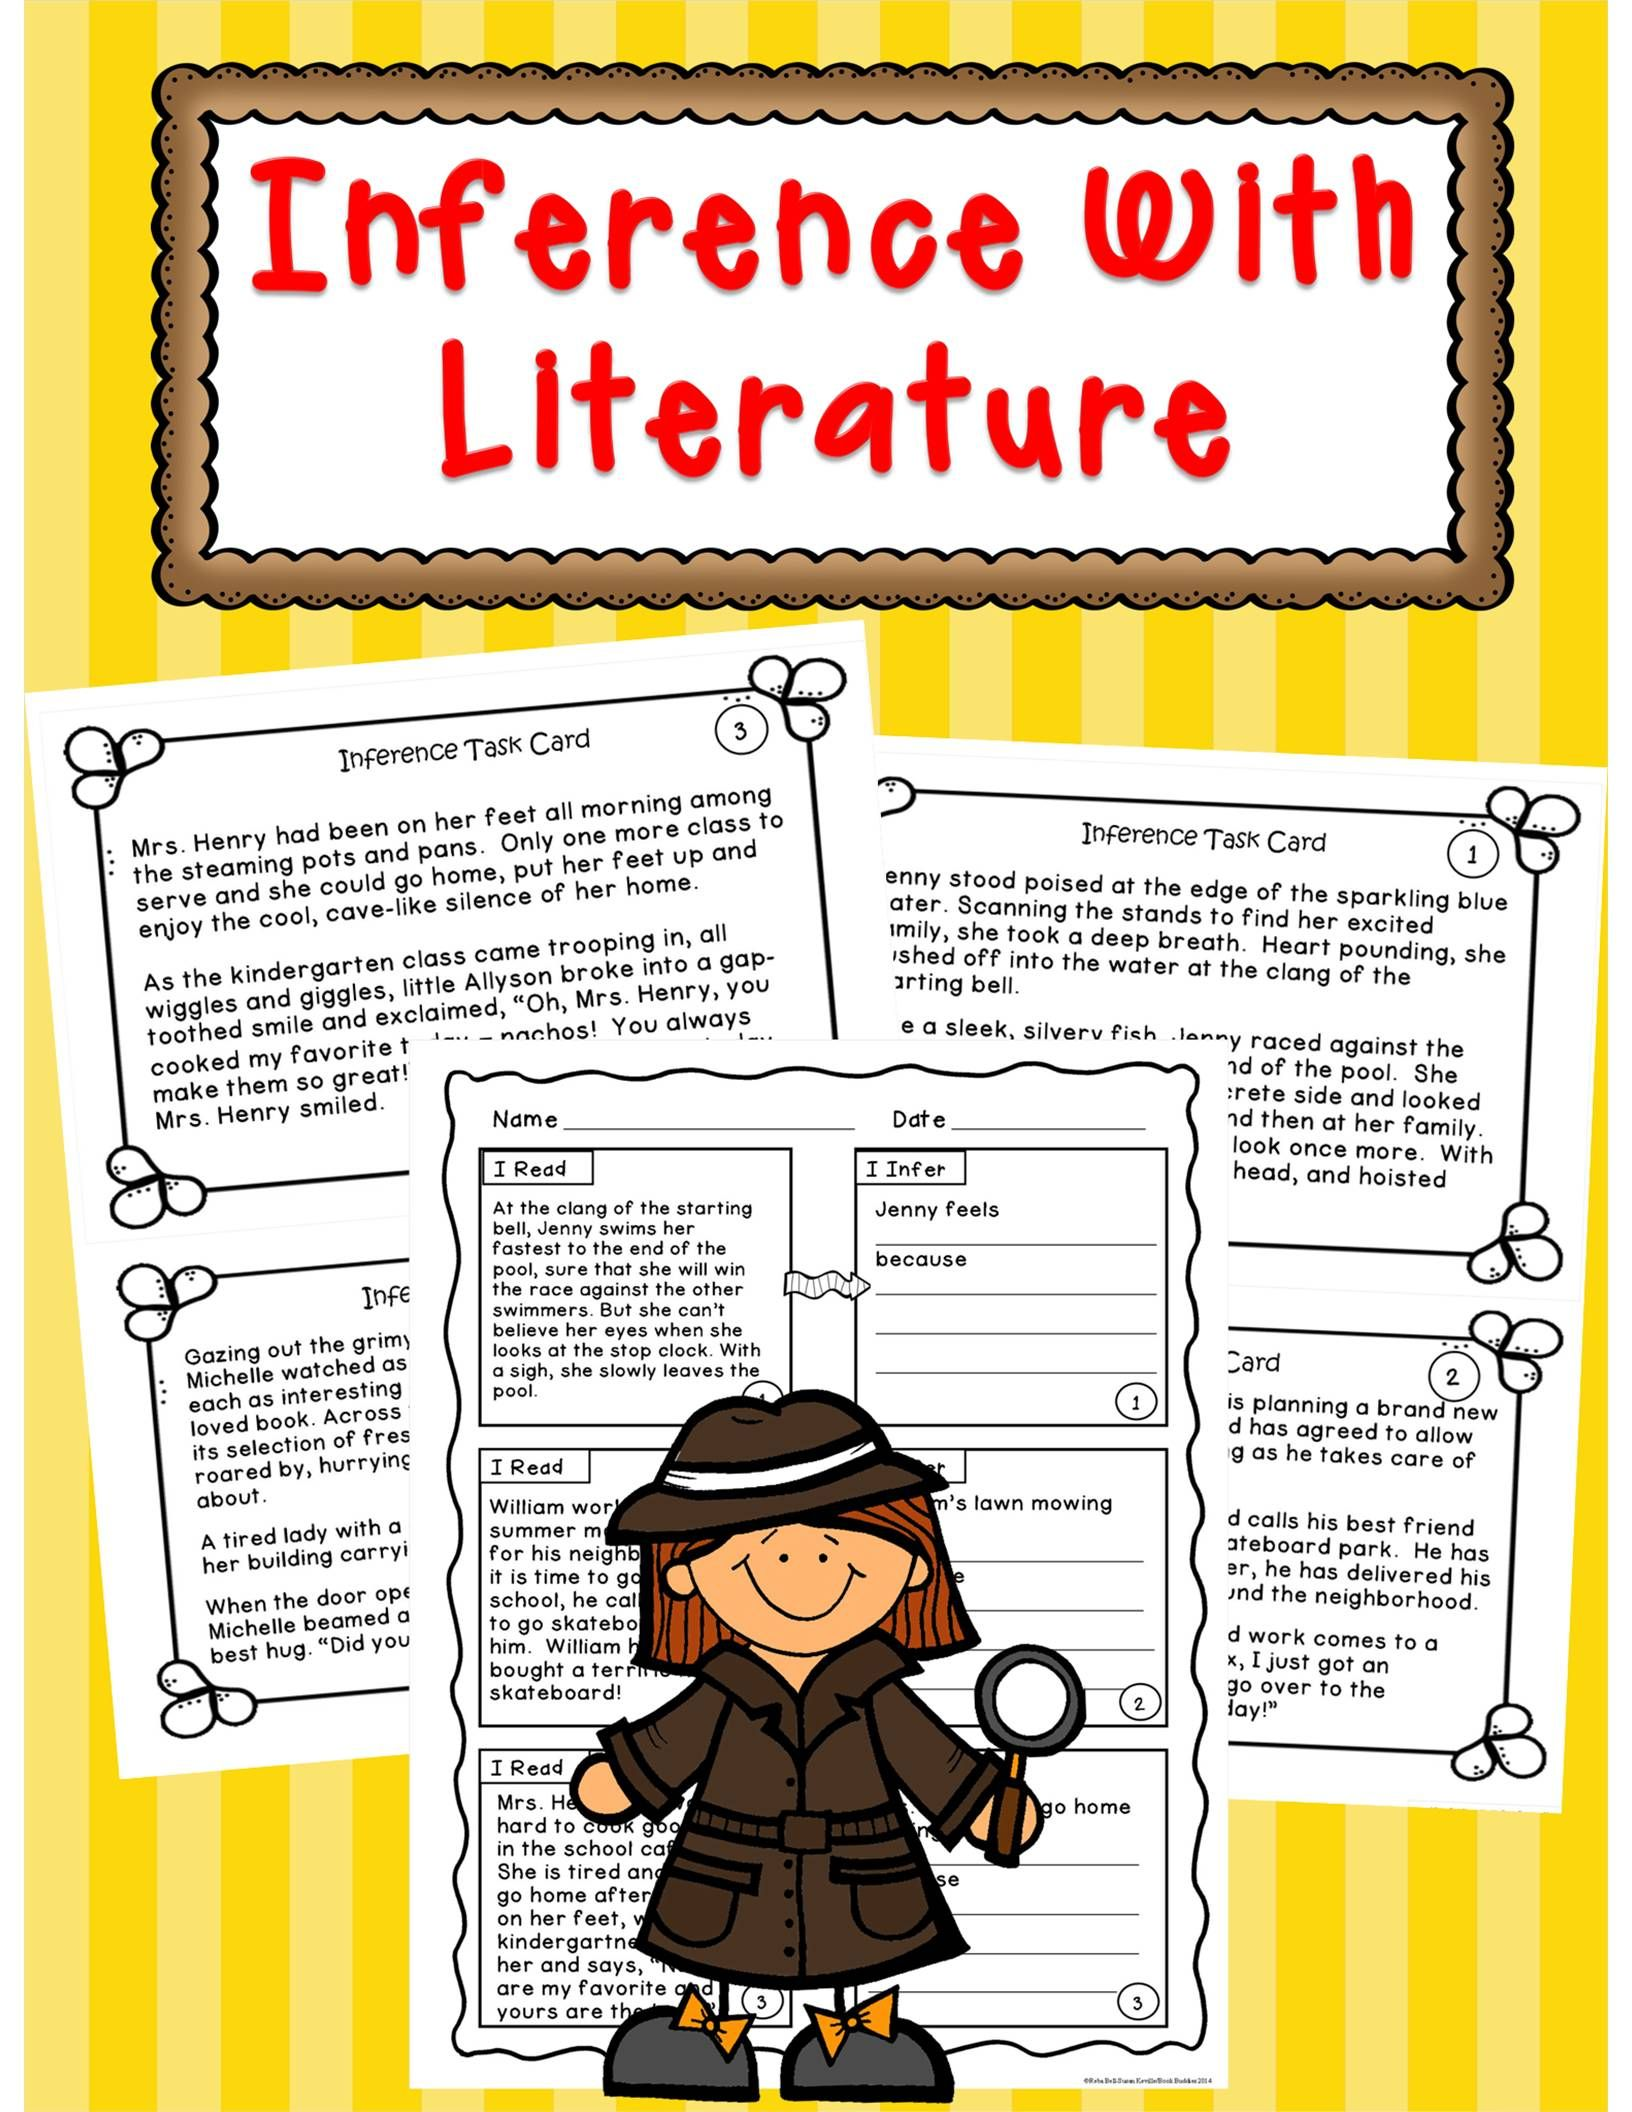 Inference Fiction Passages And Activities Teaching Ideas For 3rd